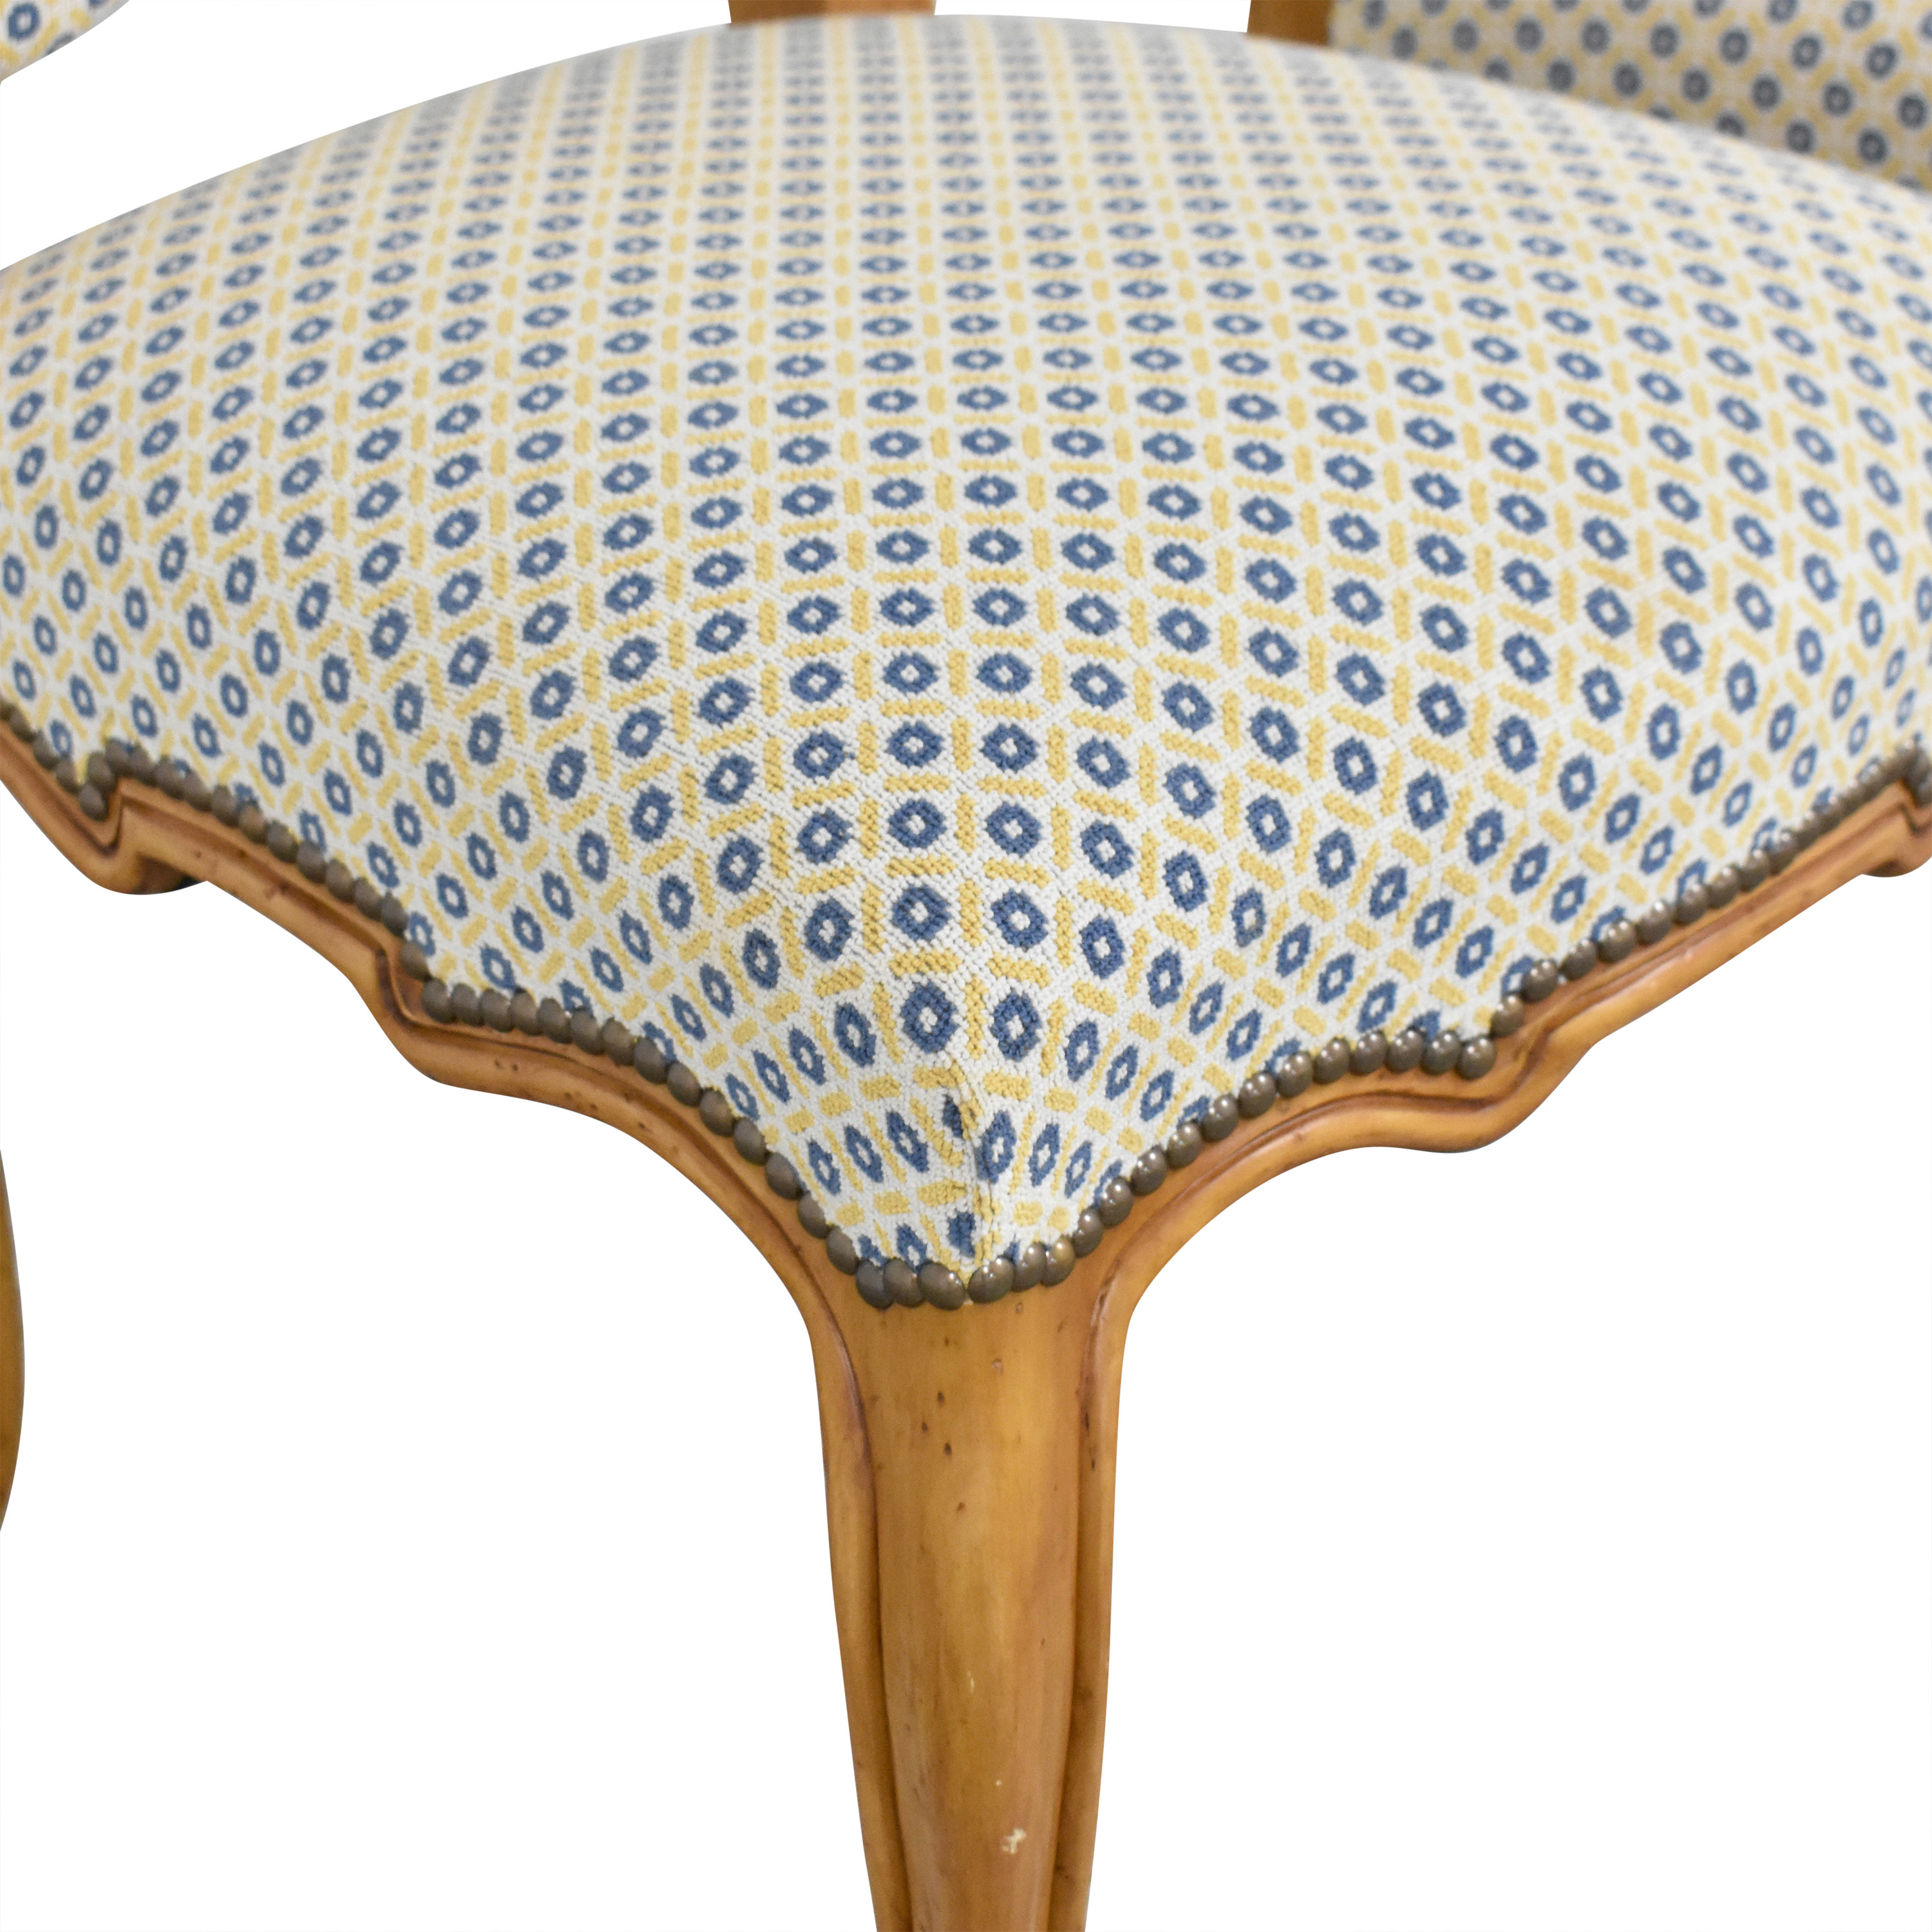 buy Minton-Spidell Minton-Spidell Regence Dining Side Chairs online